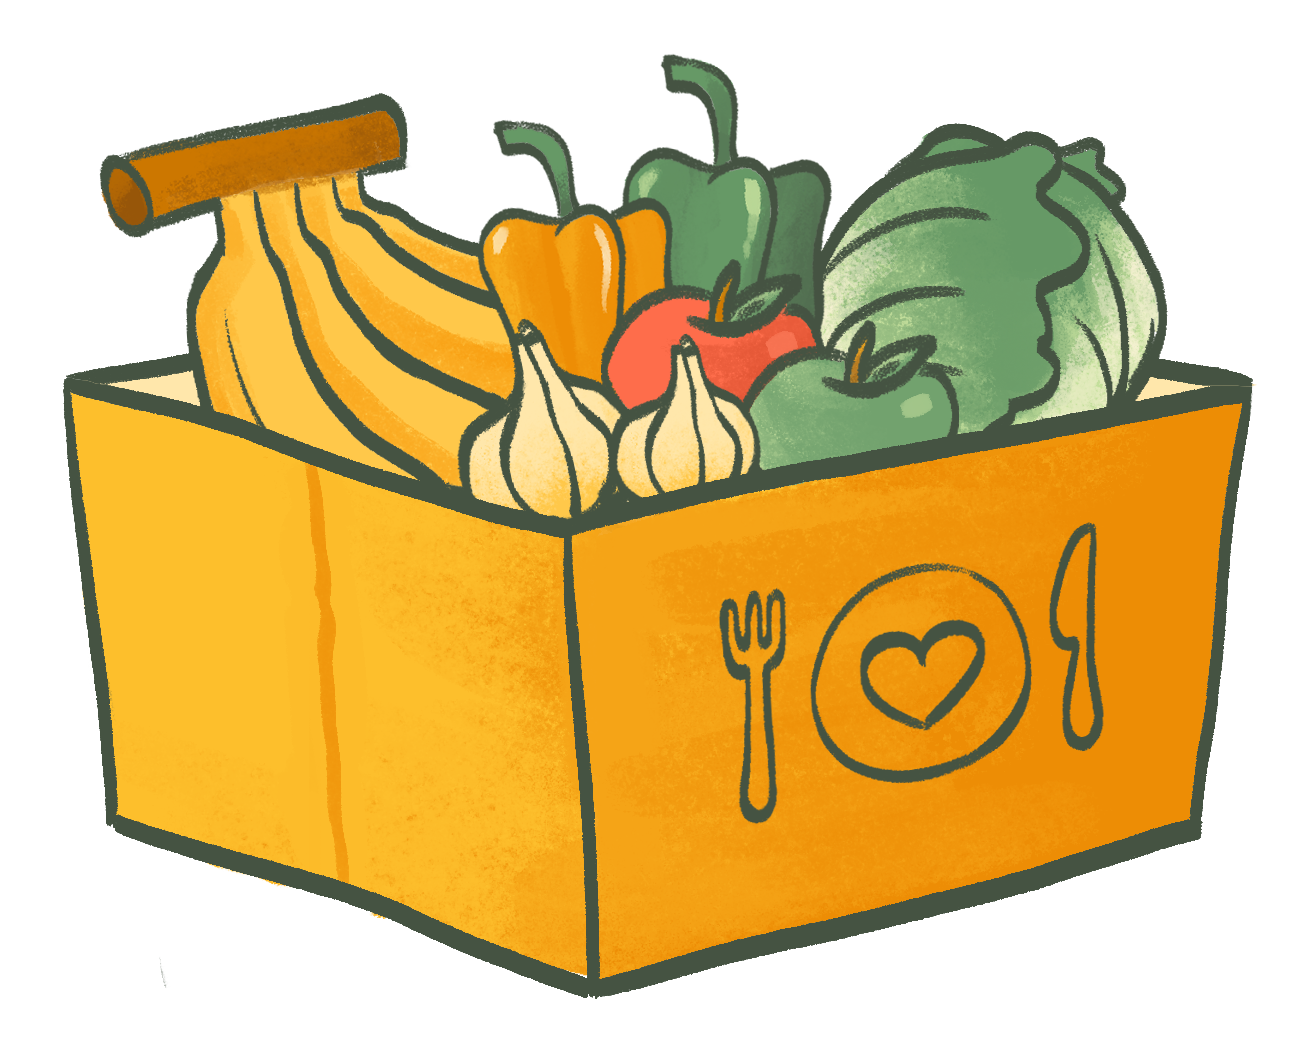 A box of fruit and veg